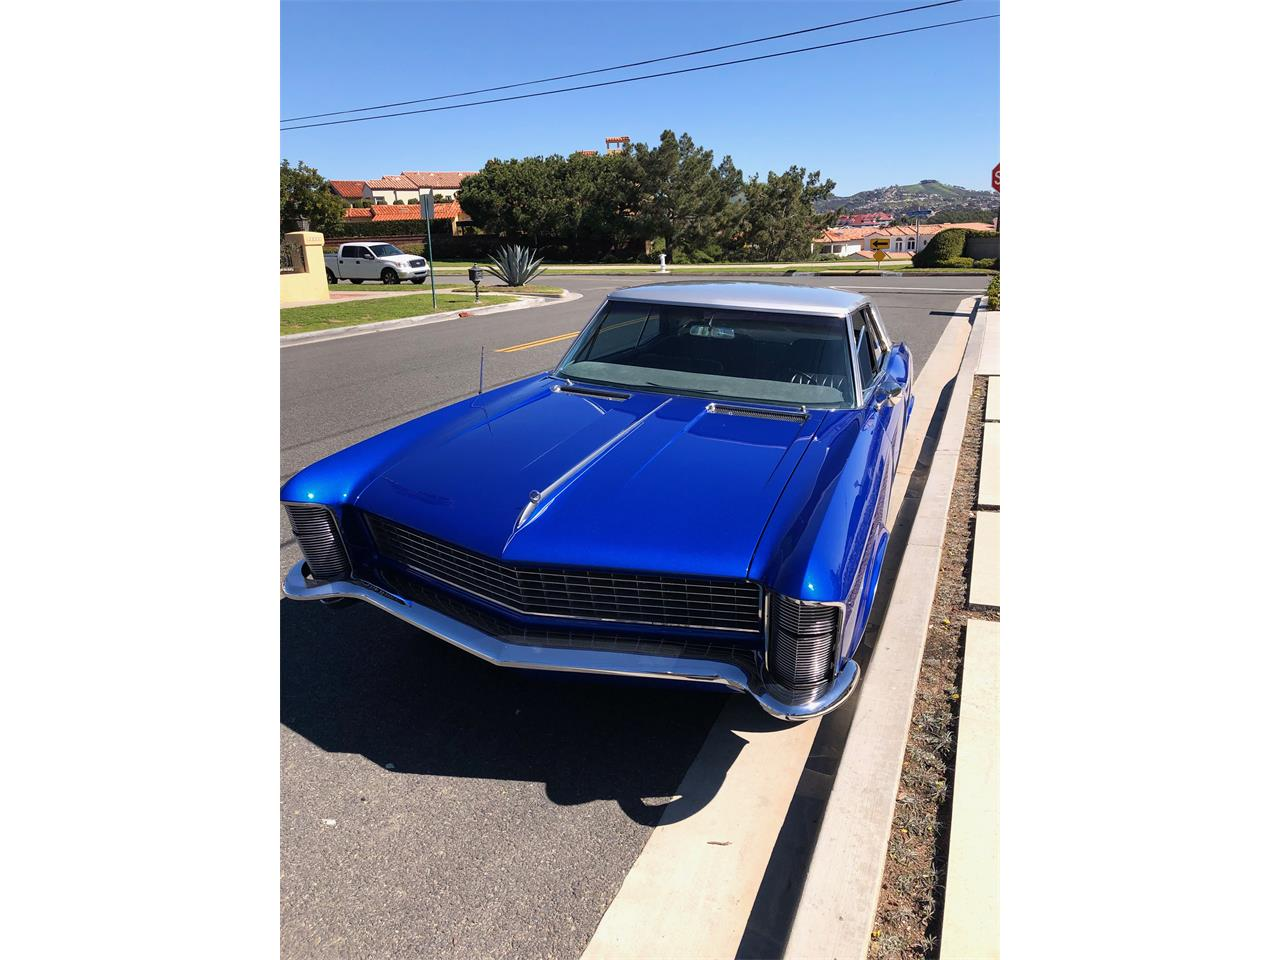 Large Picture of Classic 1965 Buick Riviera located in California - $27,499.00 Offered by a Private Seller - QHFP